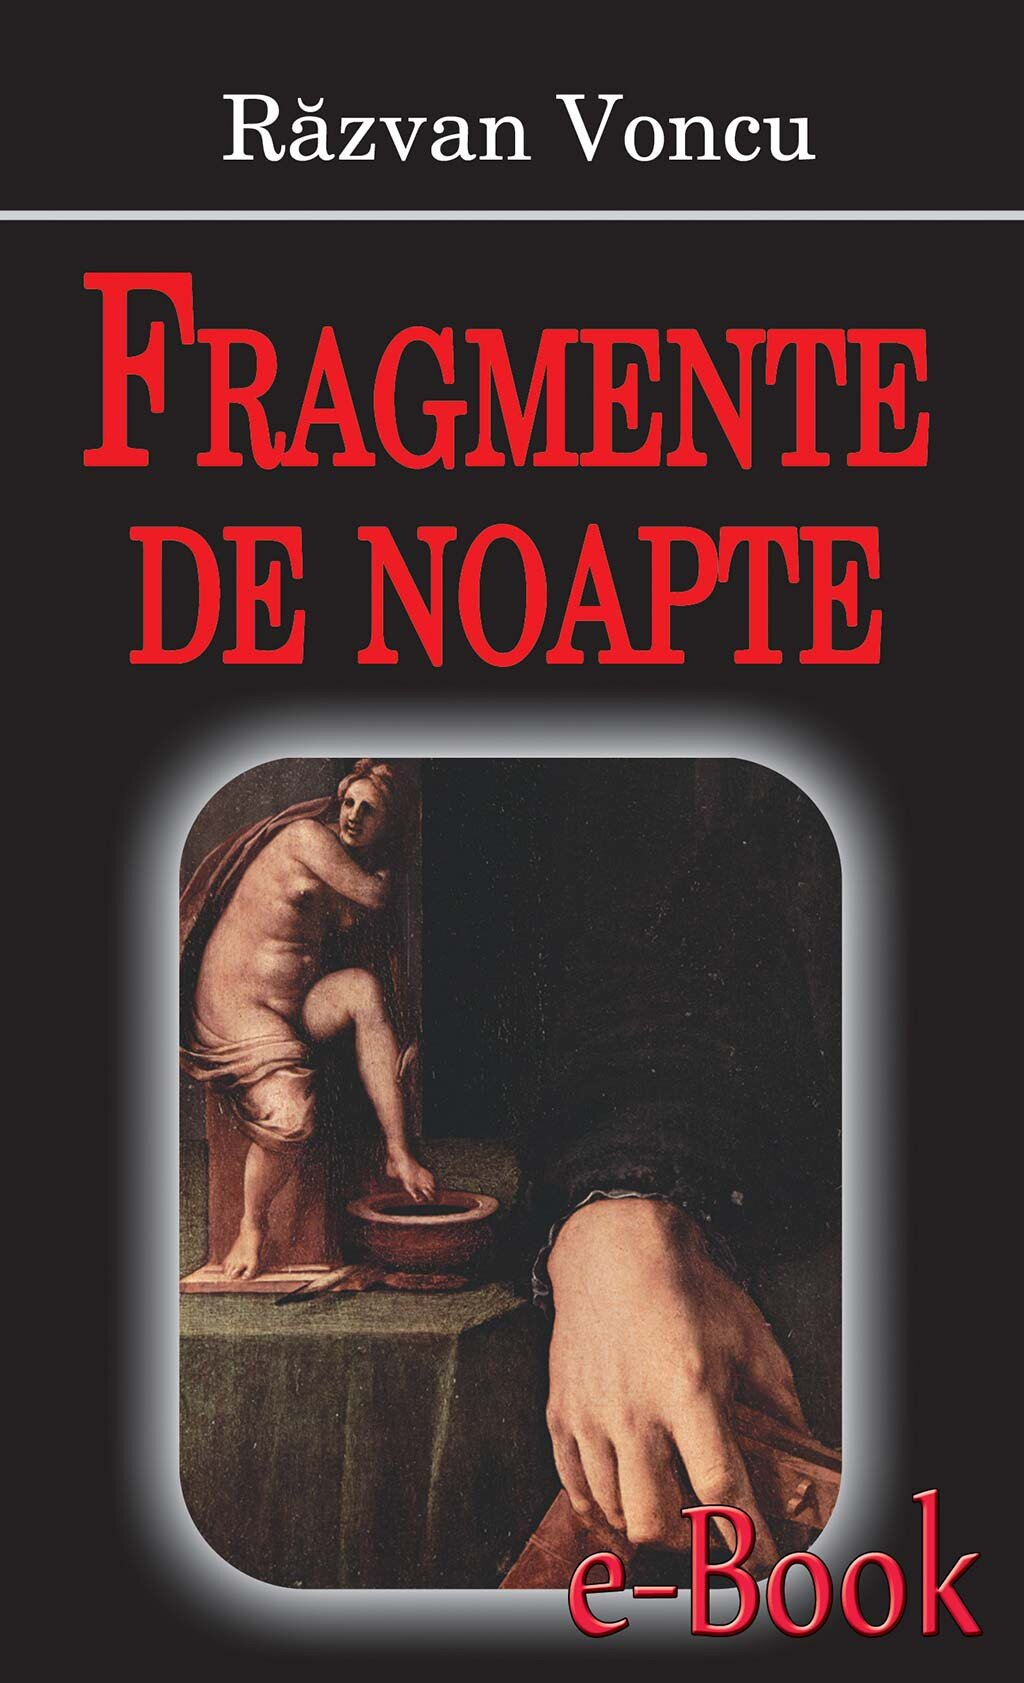 Fragmente de noapte (eBook)